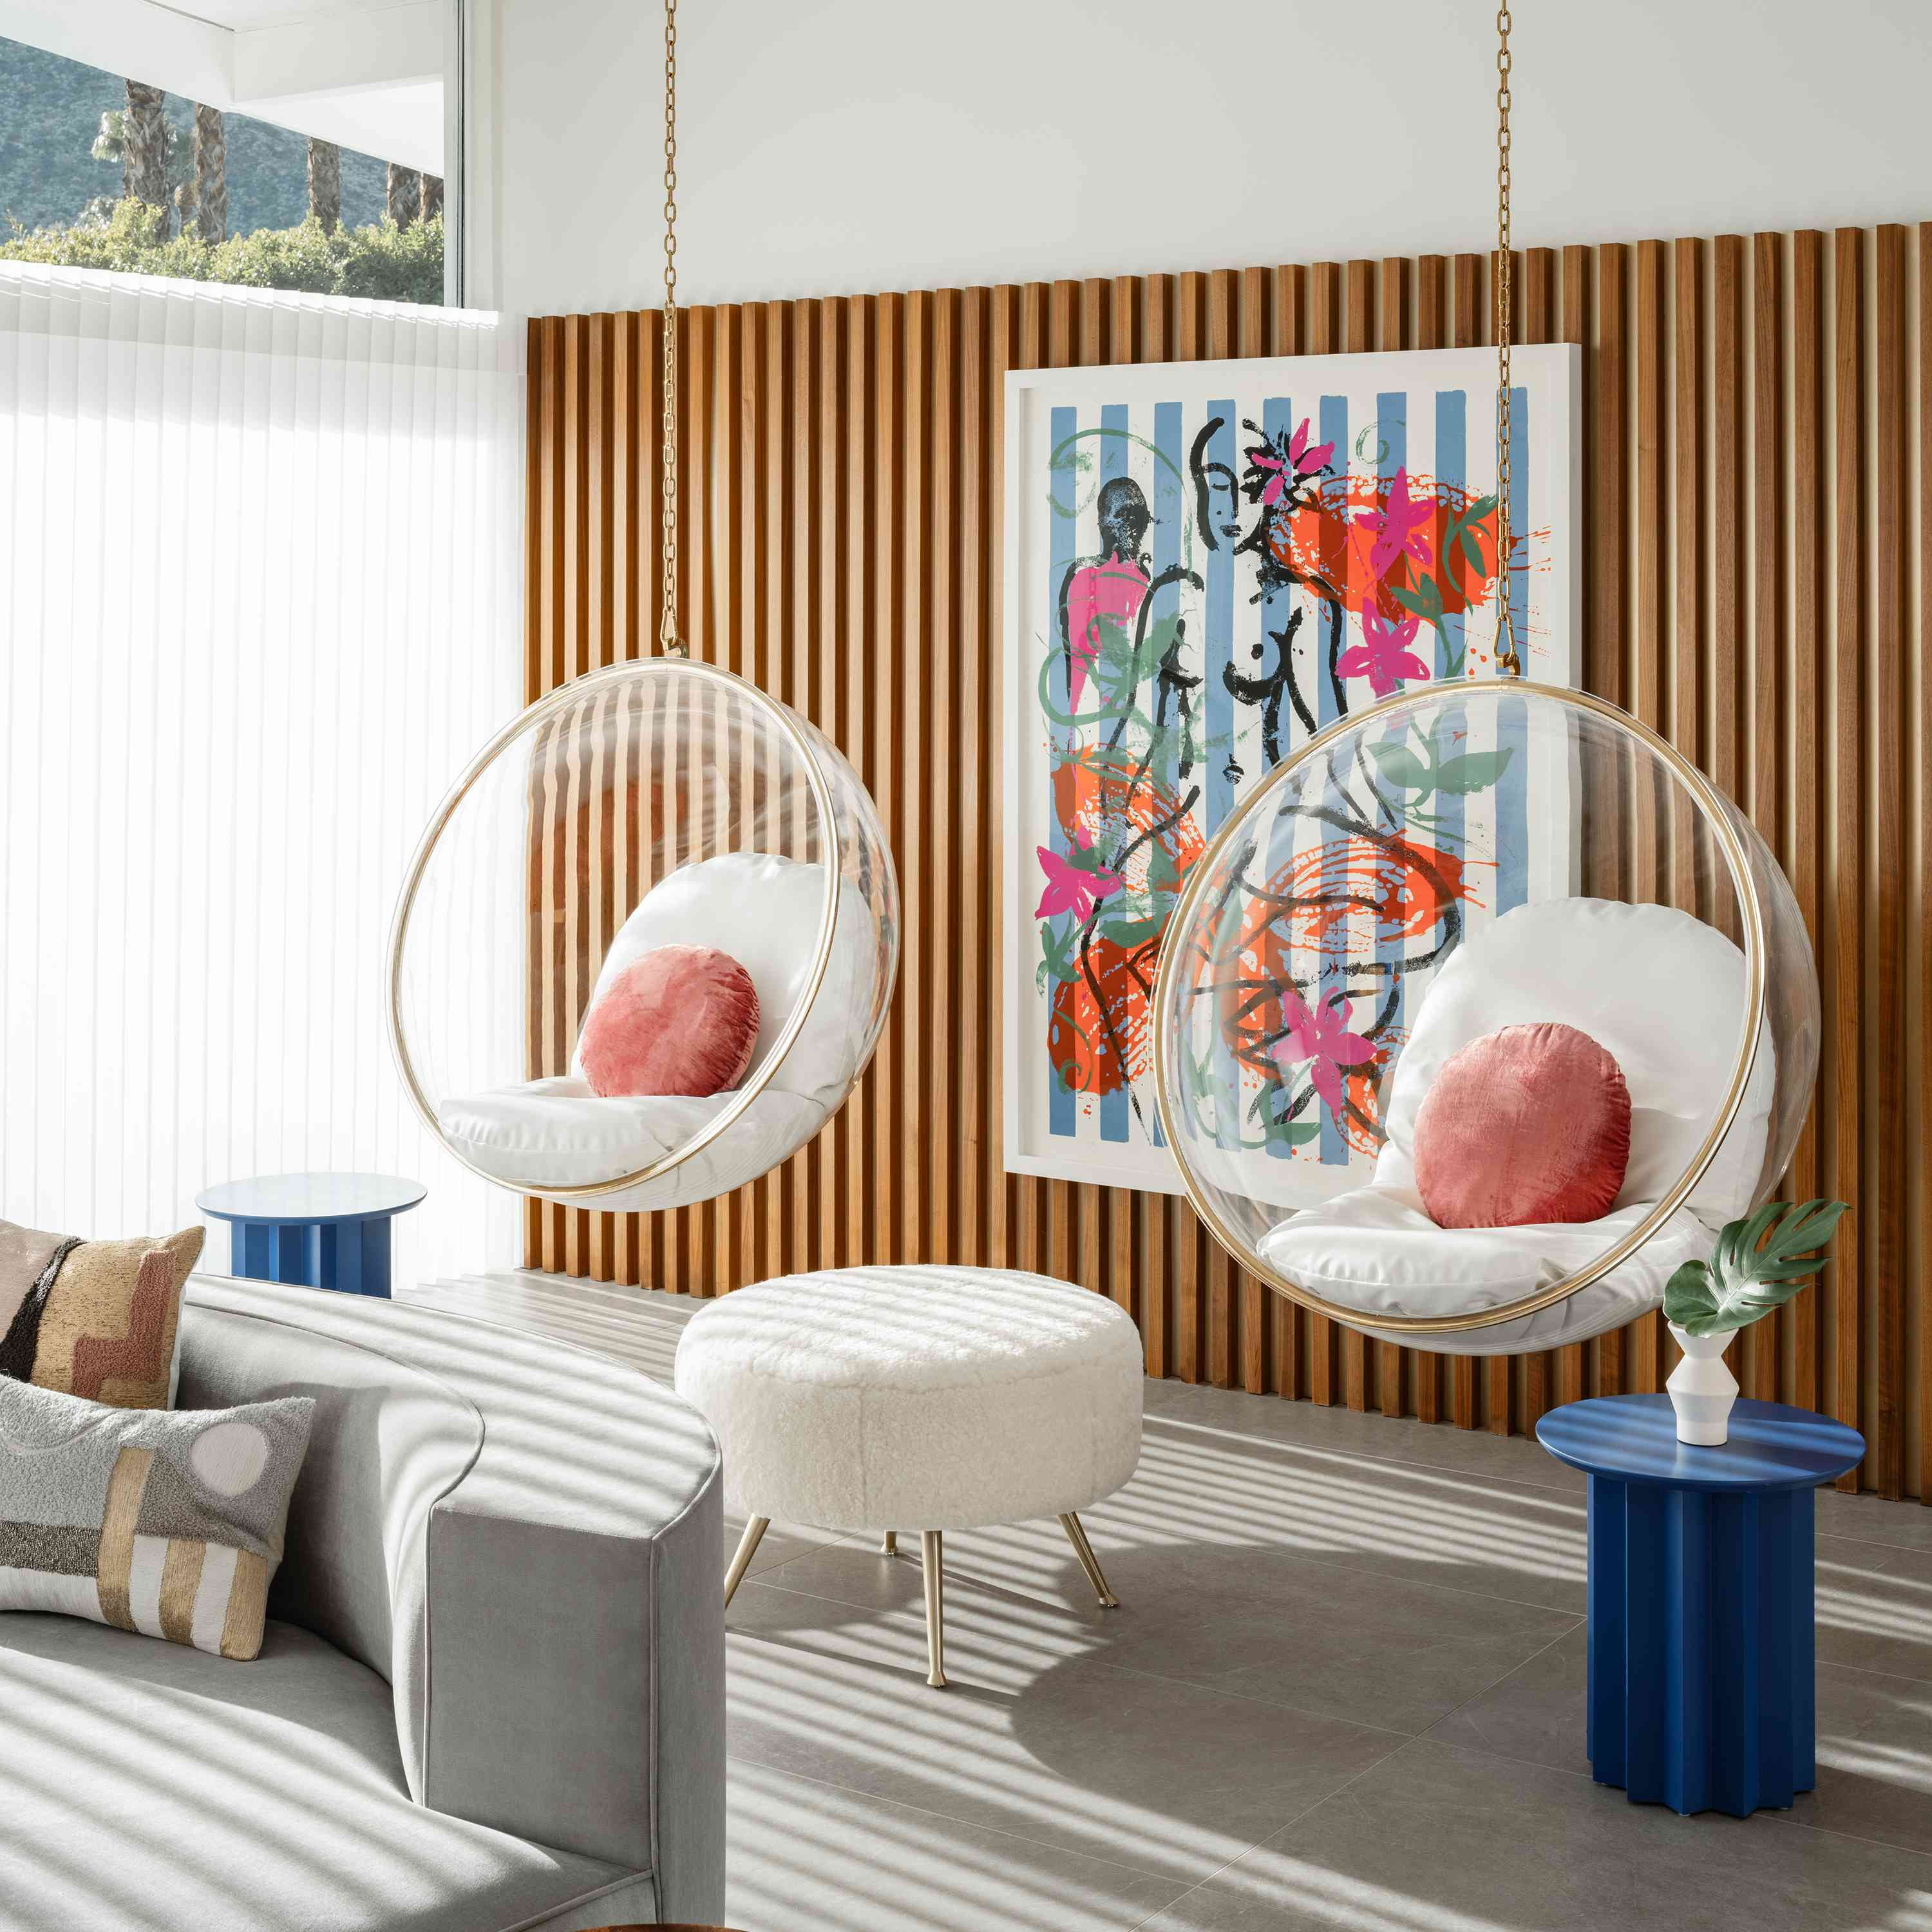 Two hanging bubble chairs in living room.